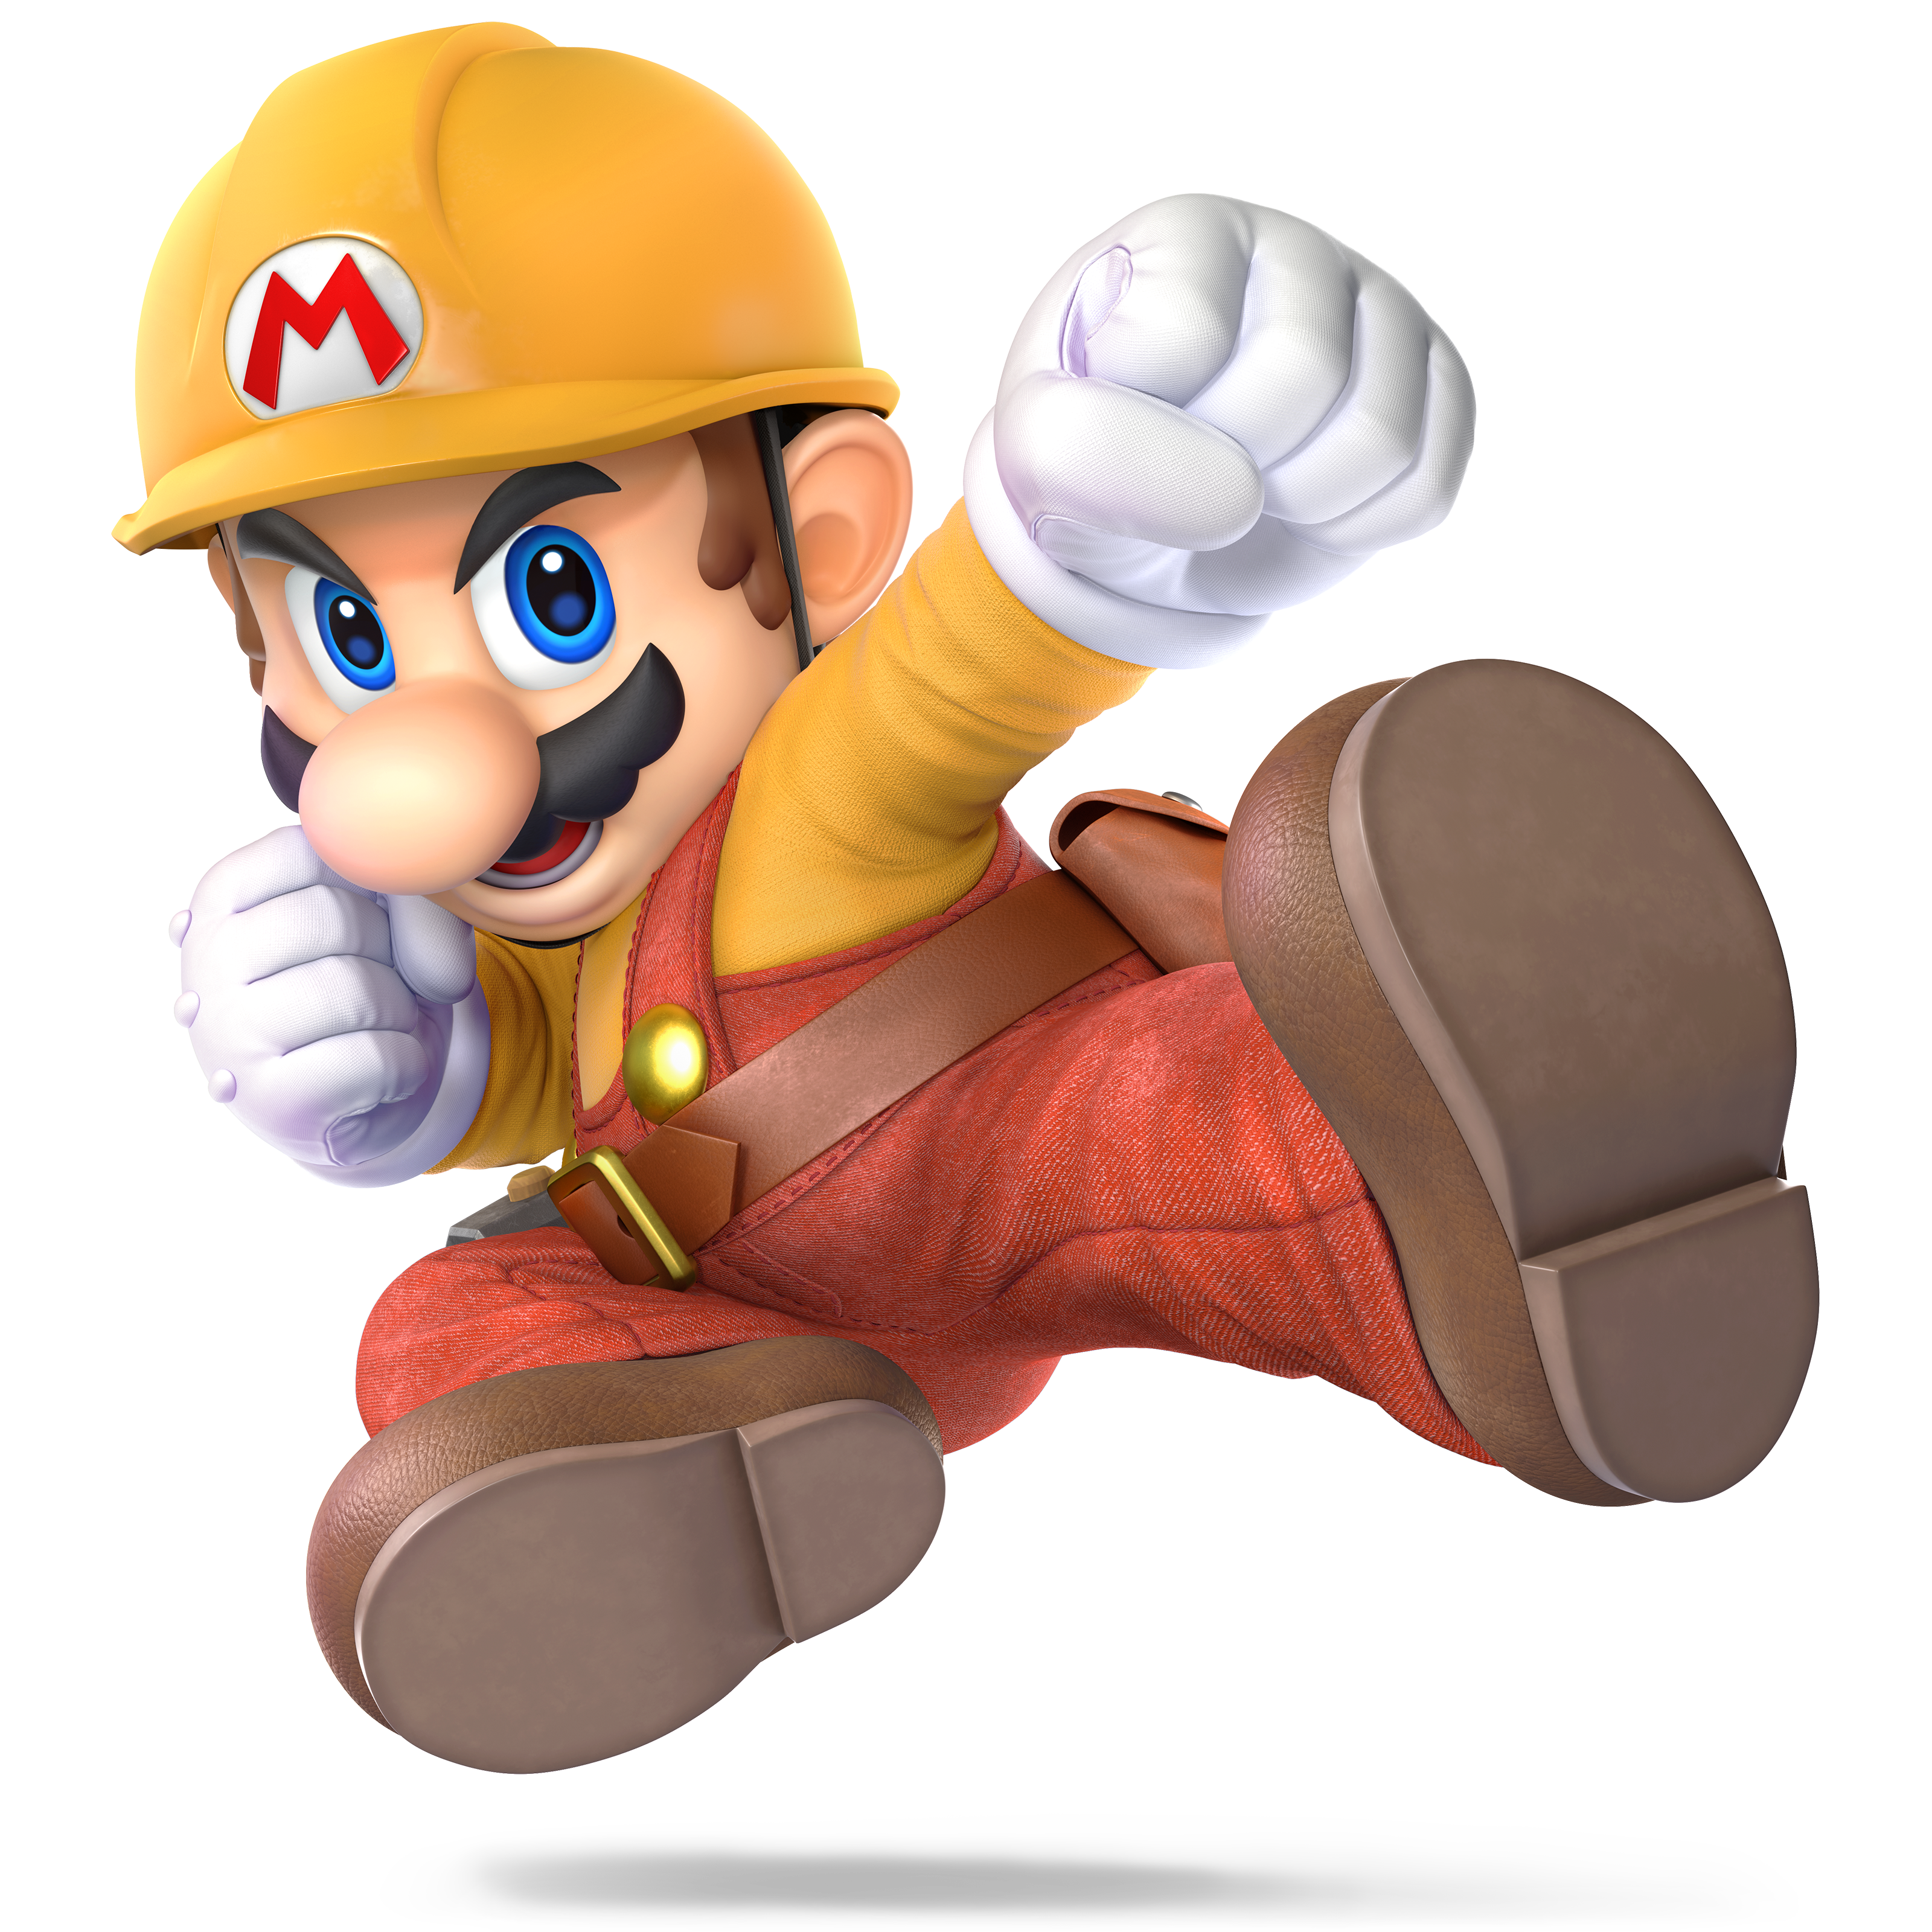 Mario Super Mario Maker Variation As He Appears In Super Smash